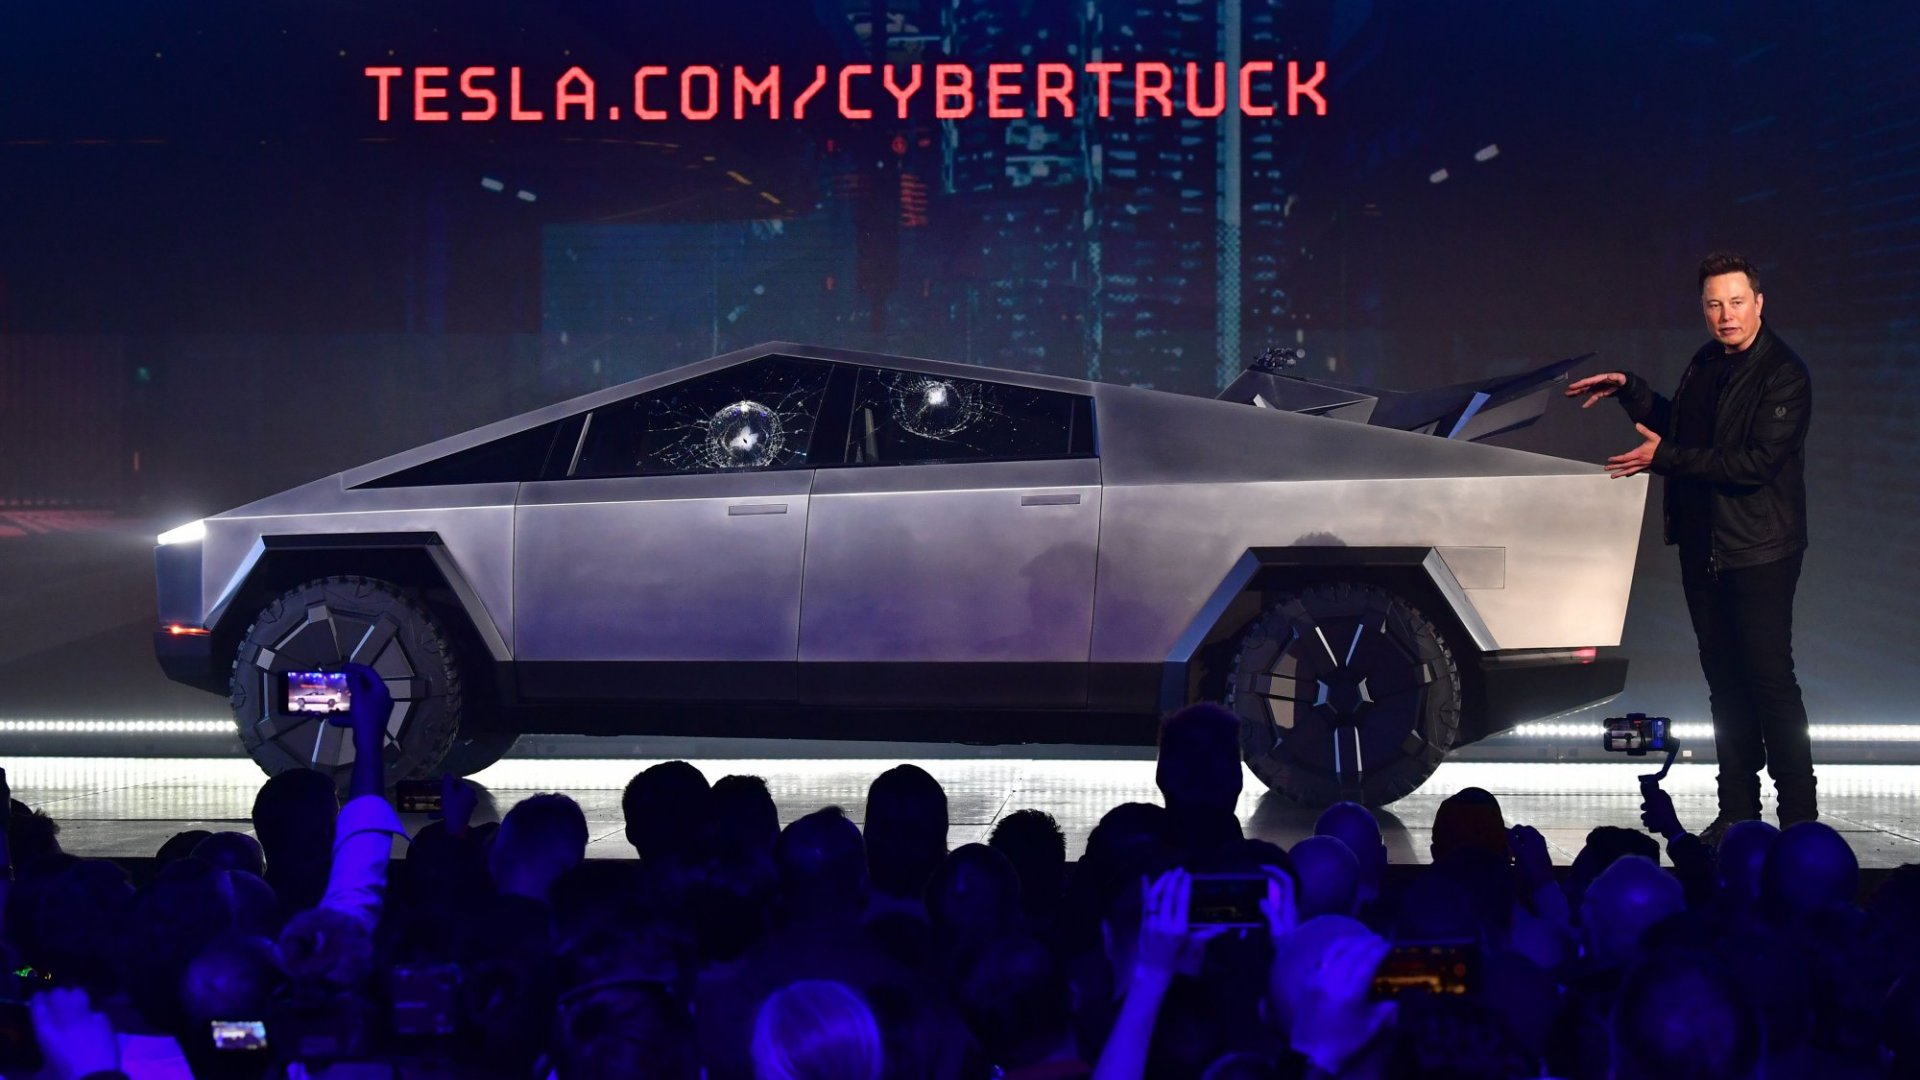 Tesla's Cybertruck Preorders Are Impressive. But They Mean Very Little Right Now